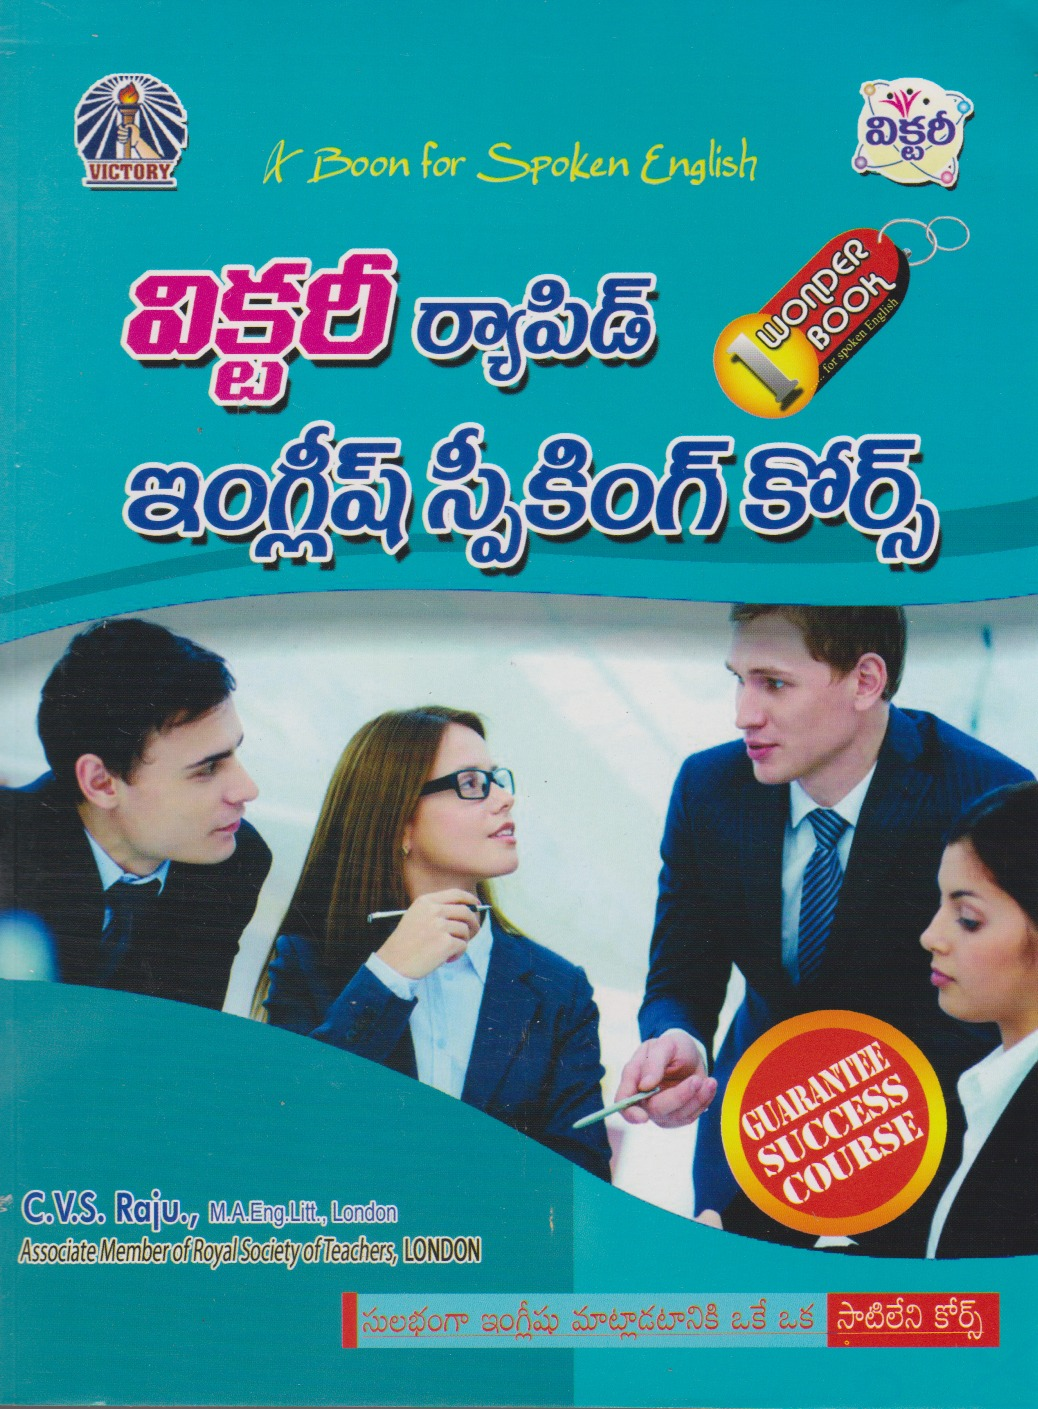 Vicotry Rapid English Speaking Course